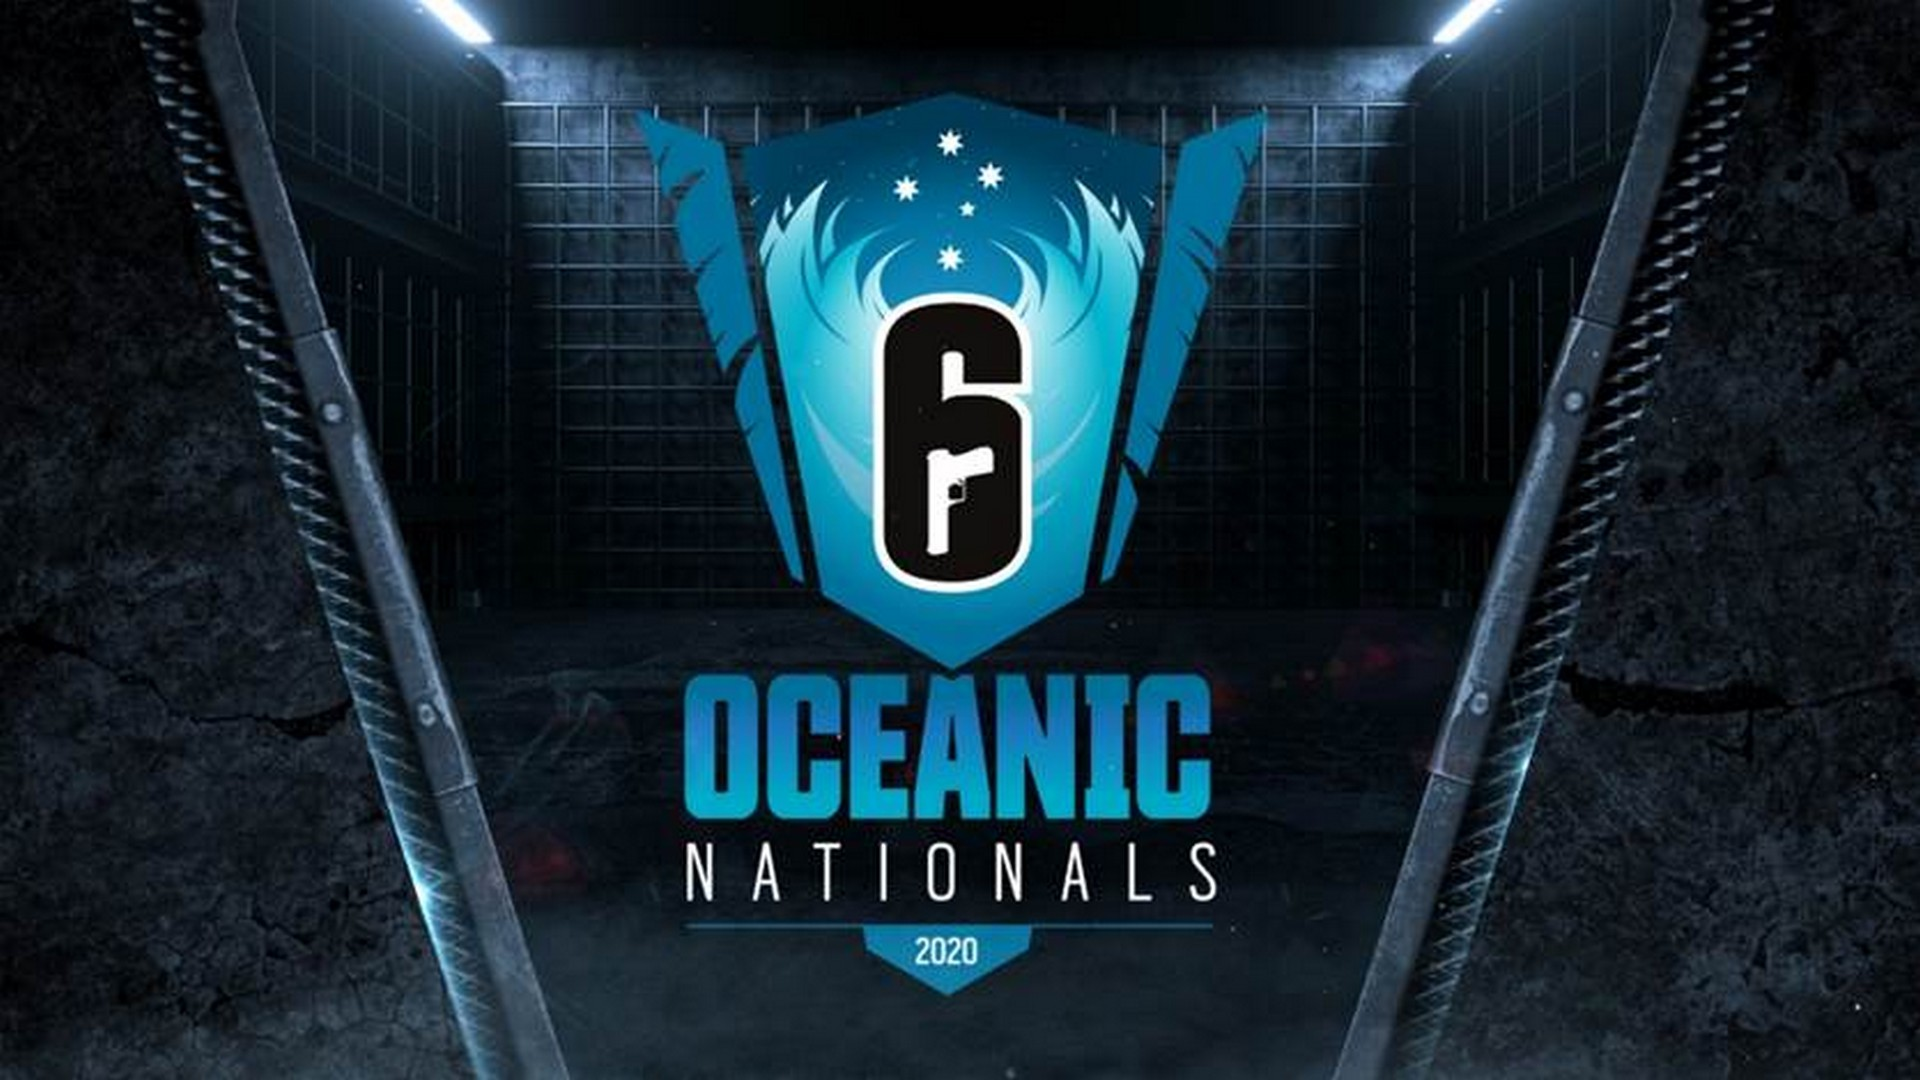 Tune In On September 16th To Watch The OCEANIC NATIONALS With $40,000 Prize Pool